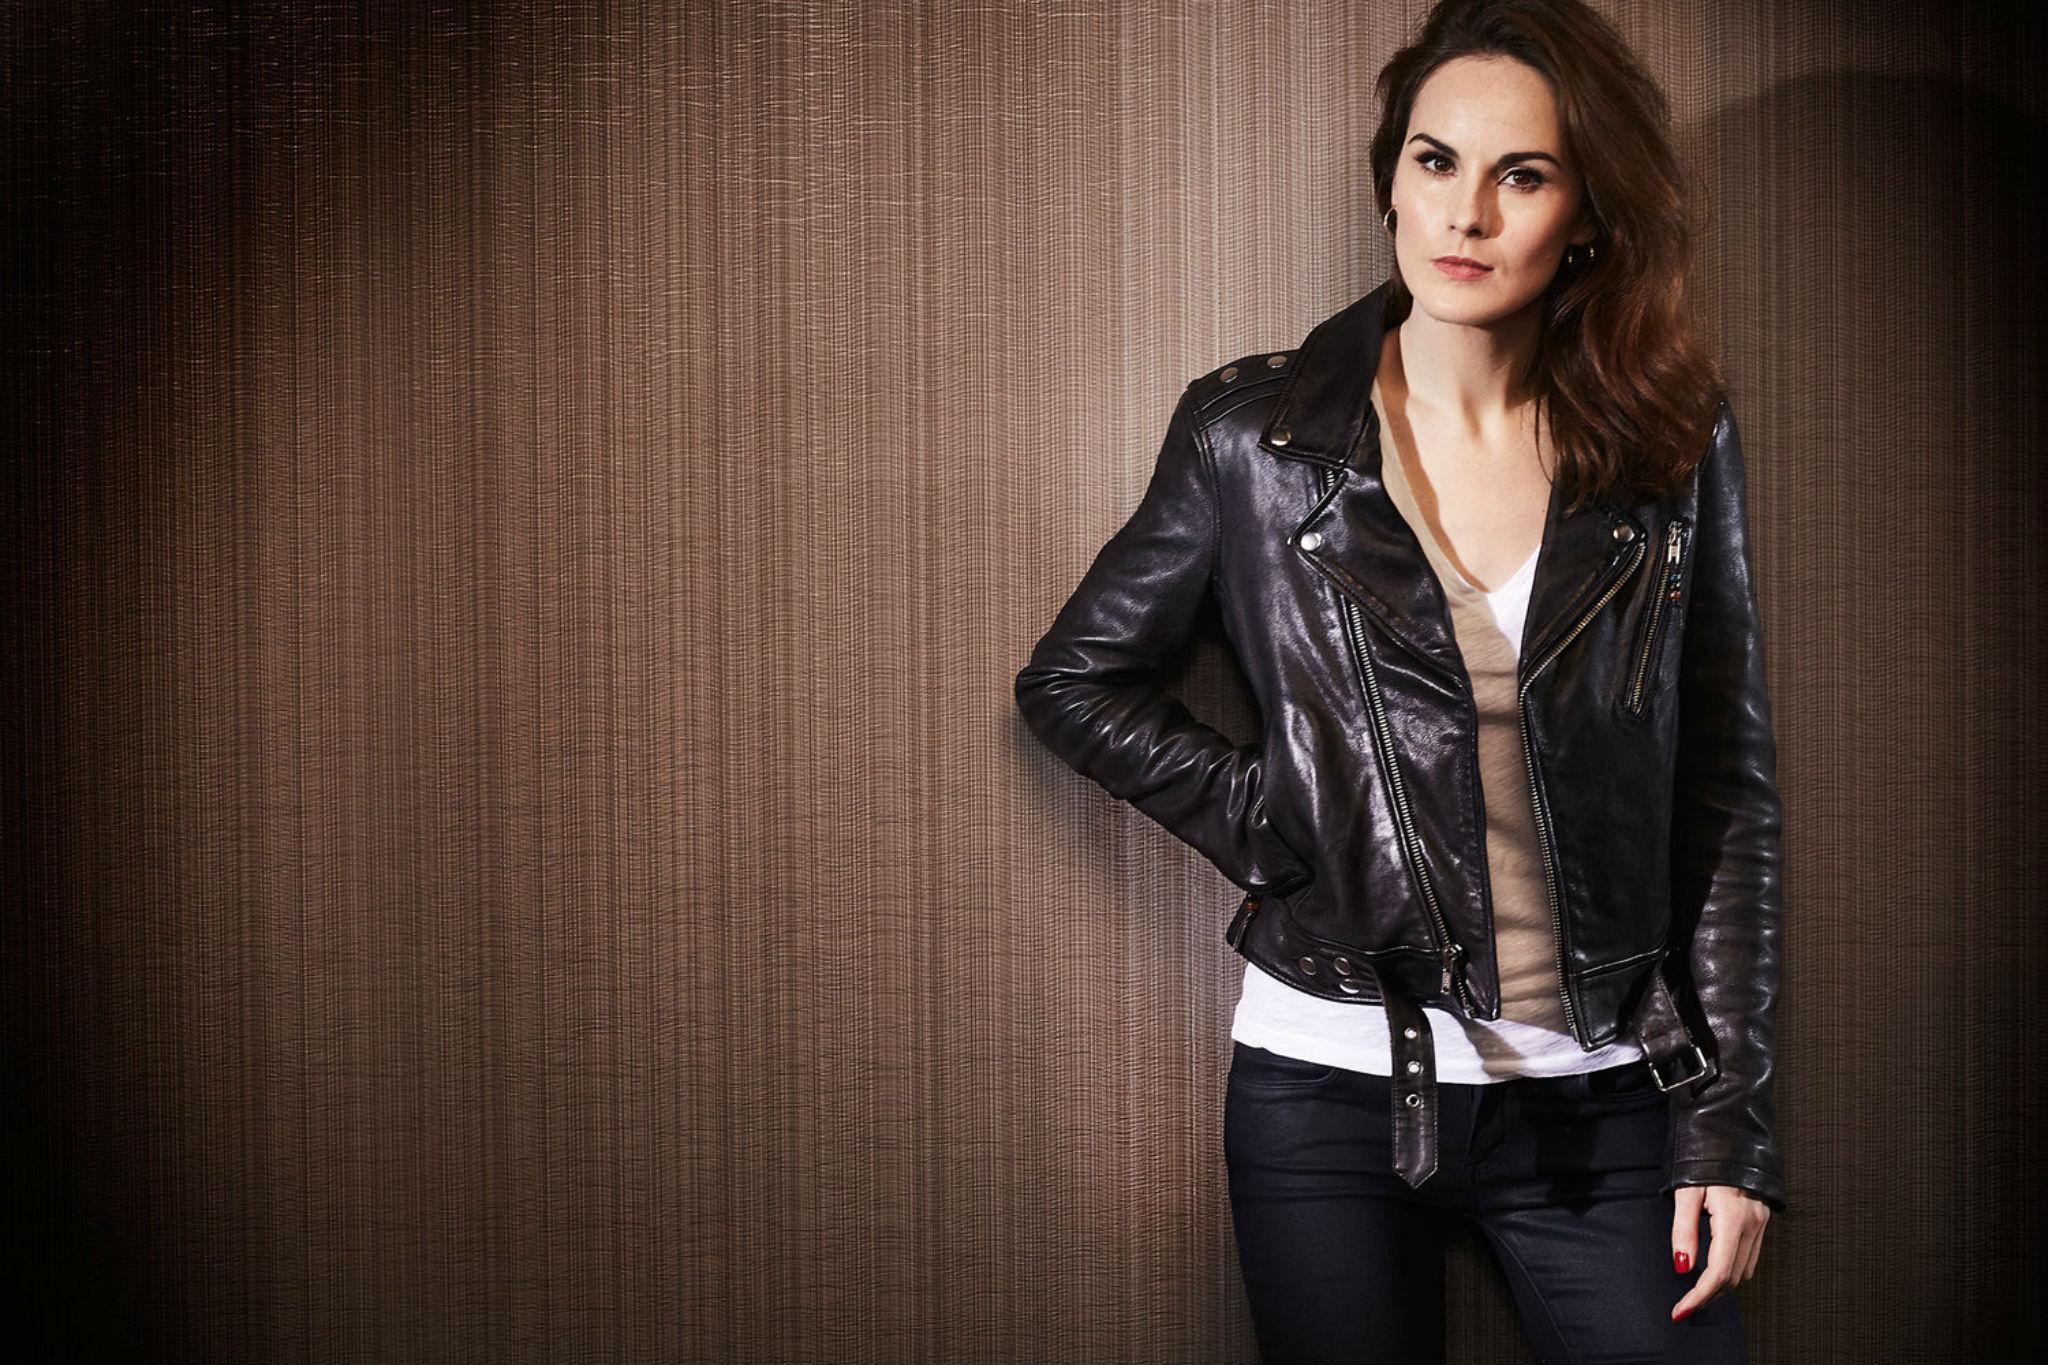 Michelle Dockery's New Role Is Her Most Important Yet